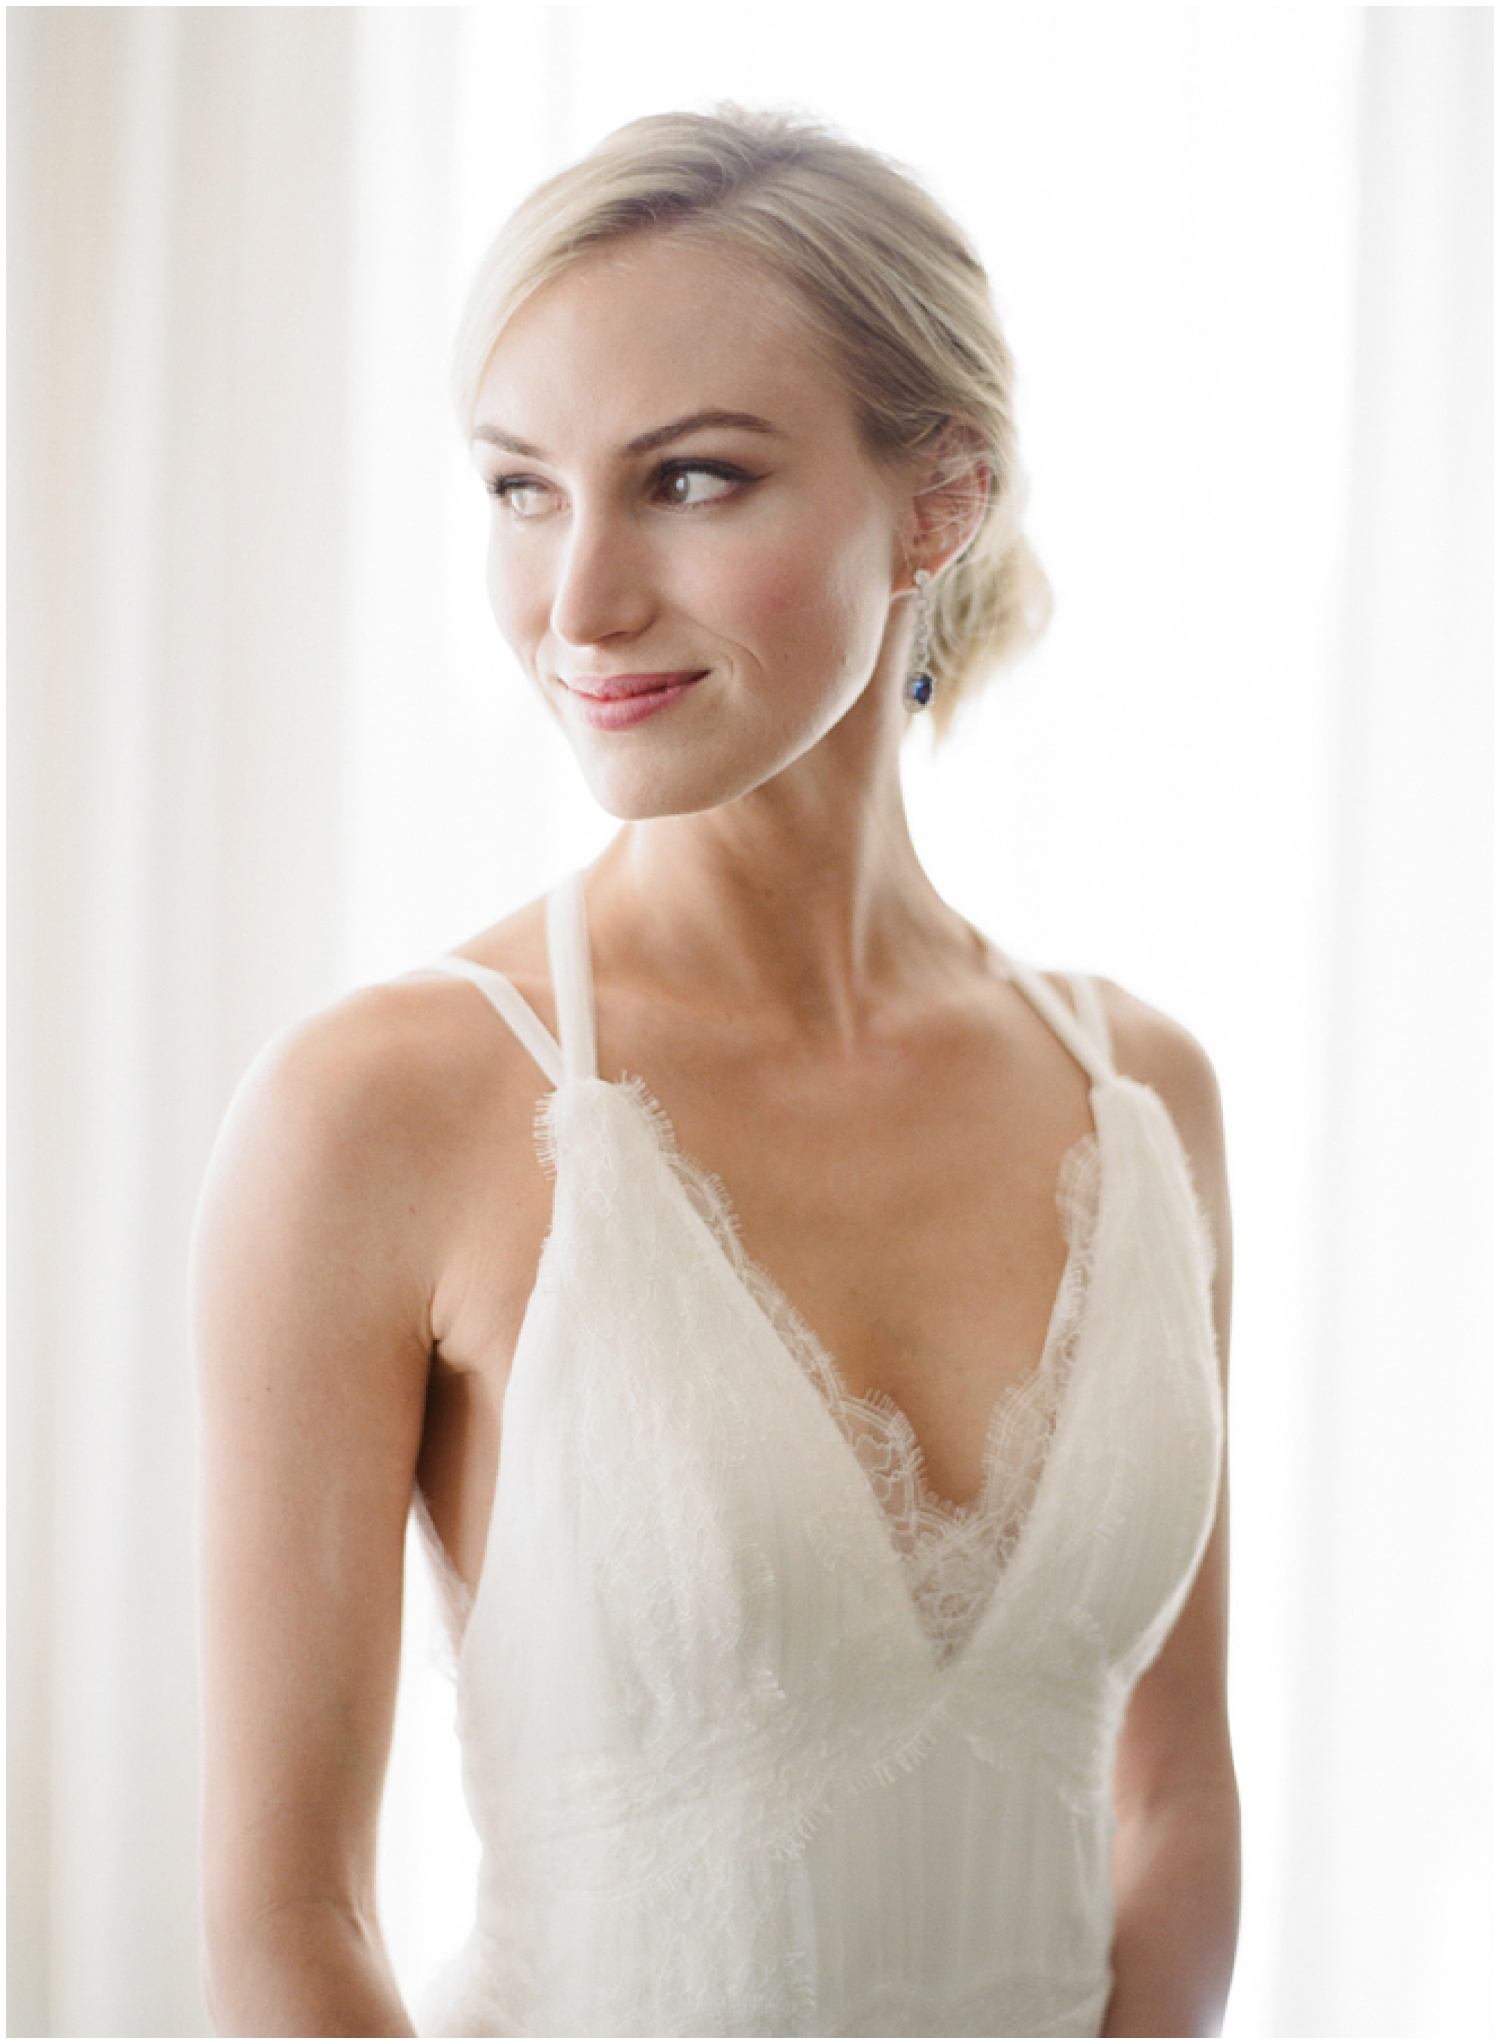 Lace Wedding Dress | Photographed by  Joel Serrato  | As seen on  Style Me Pretty